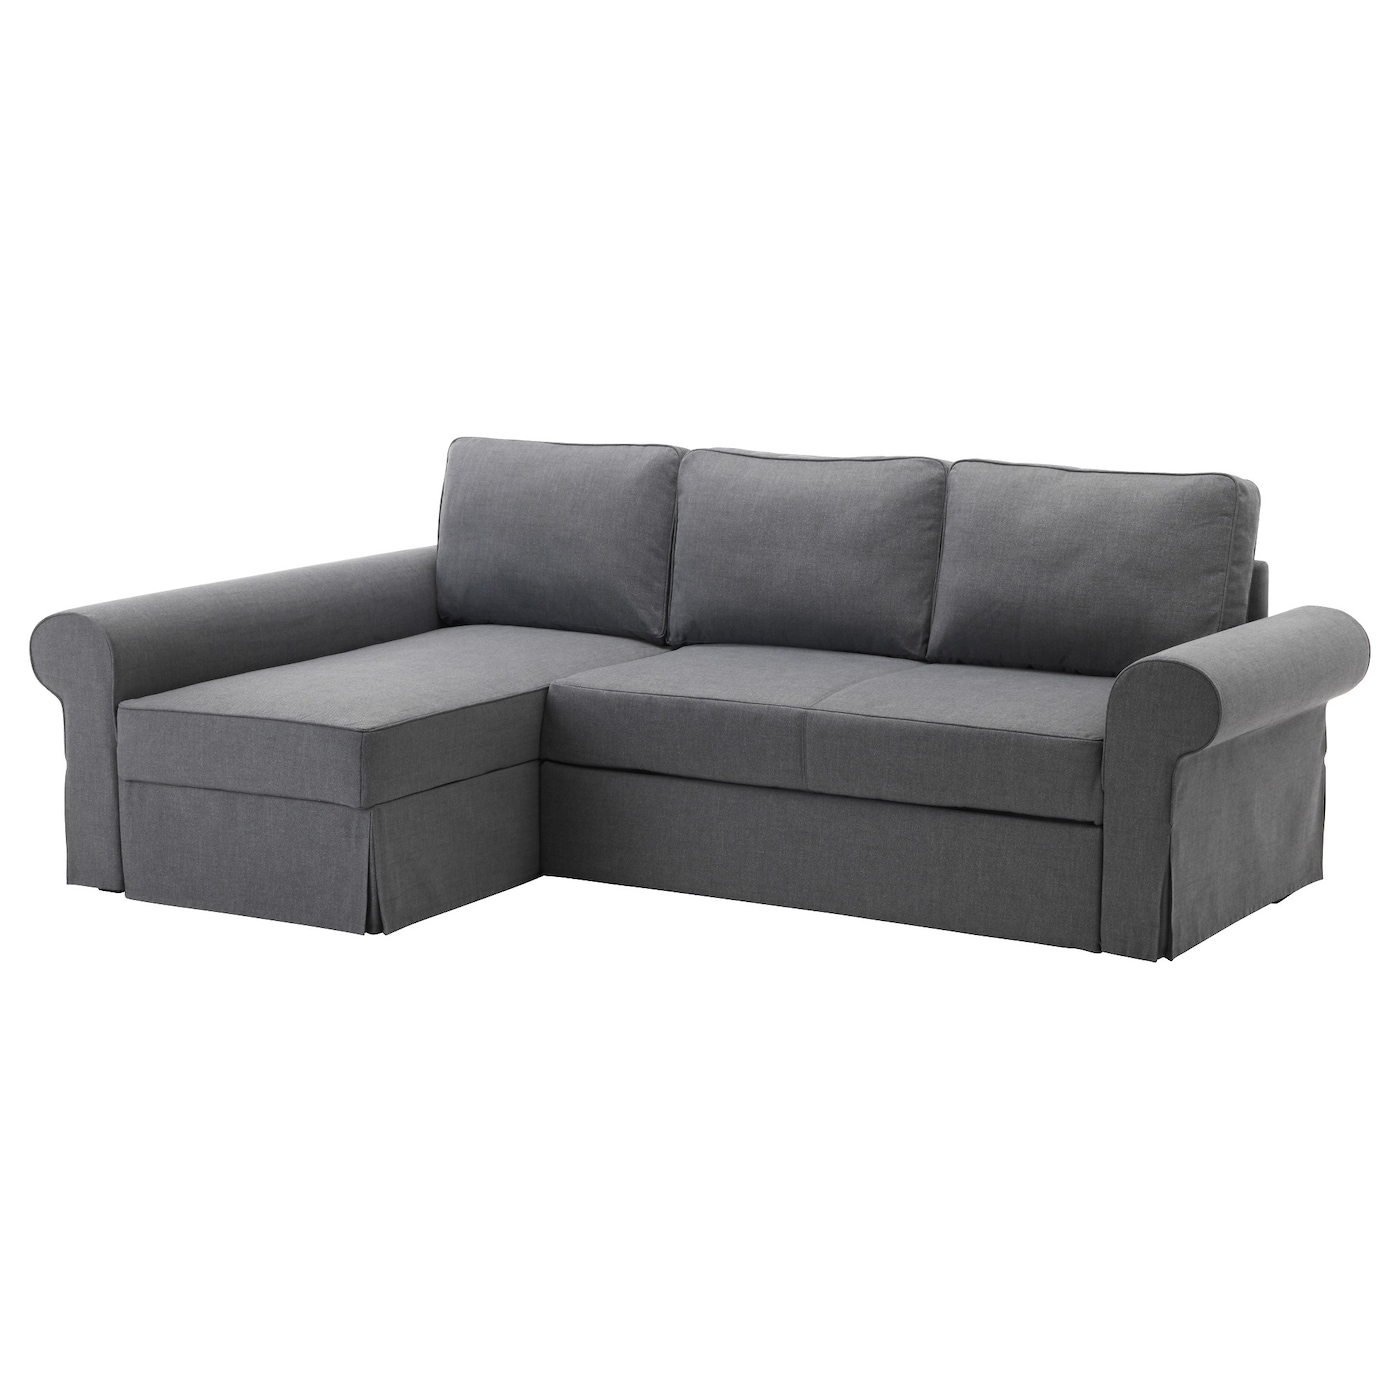 Backabro sofa bed with chaise longue nordvalla dark grey for Chaise longue tissu